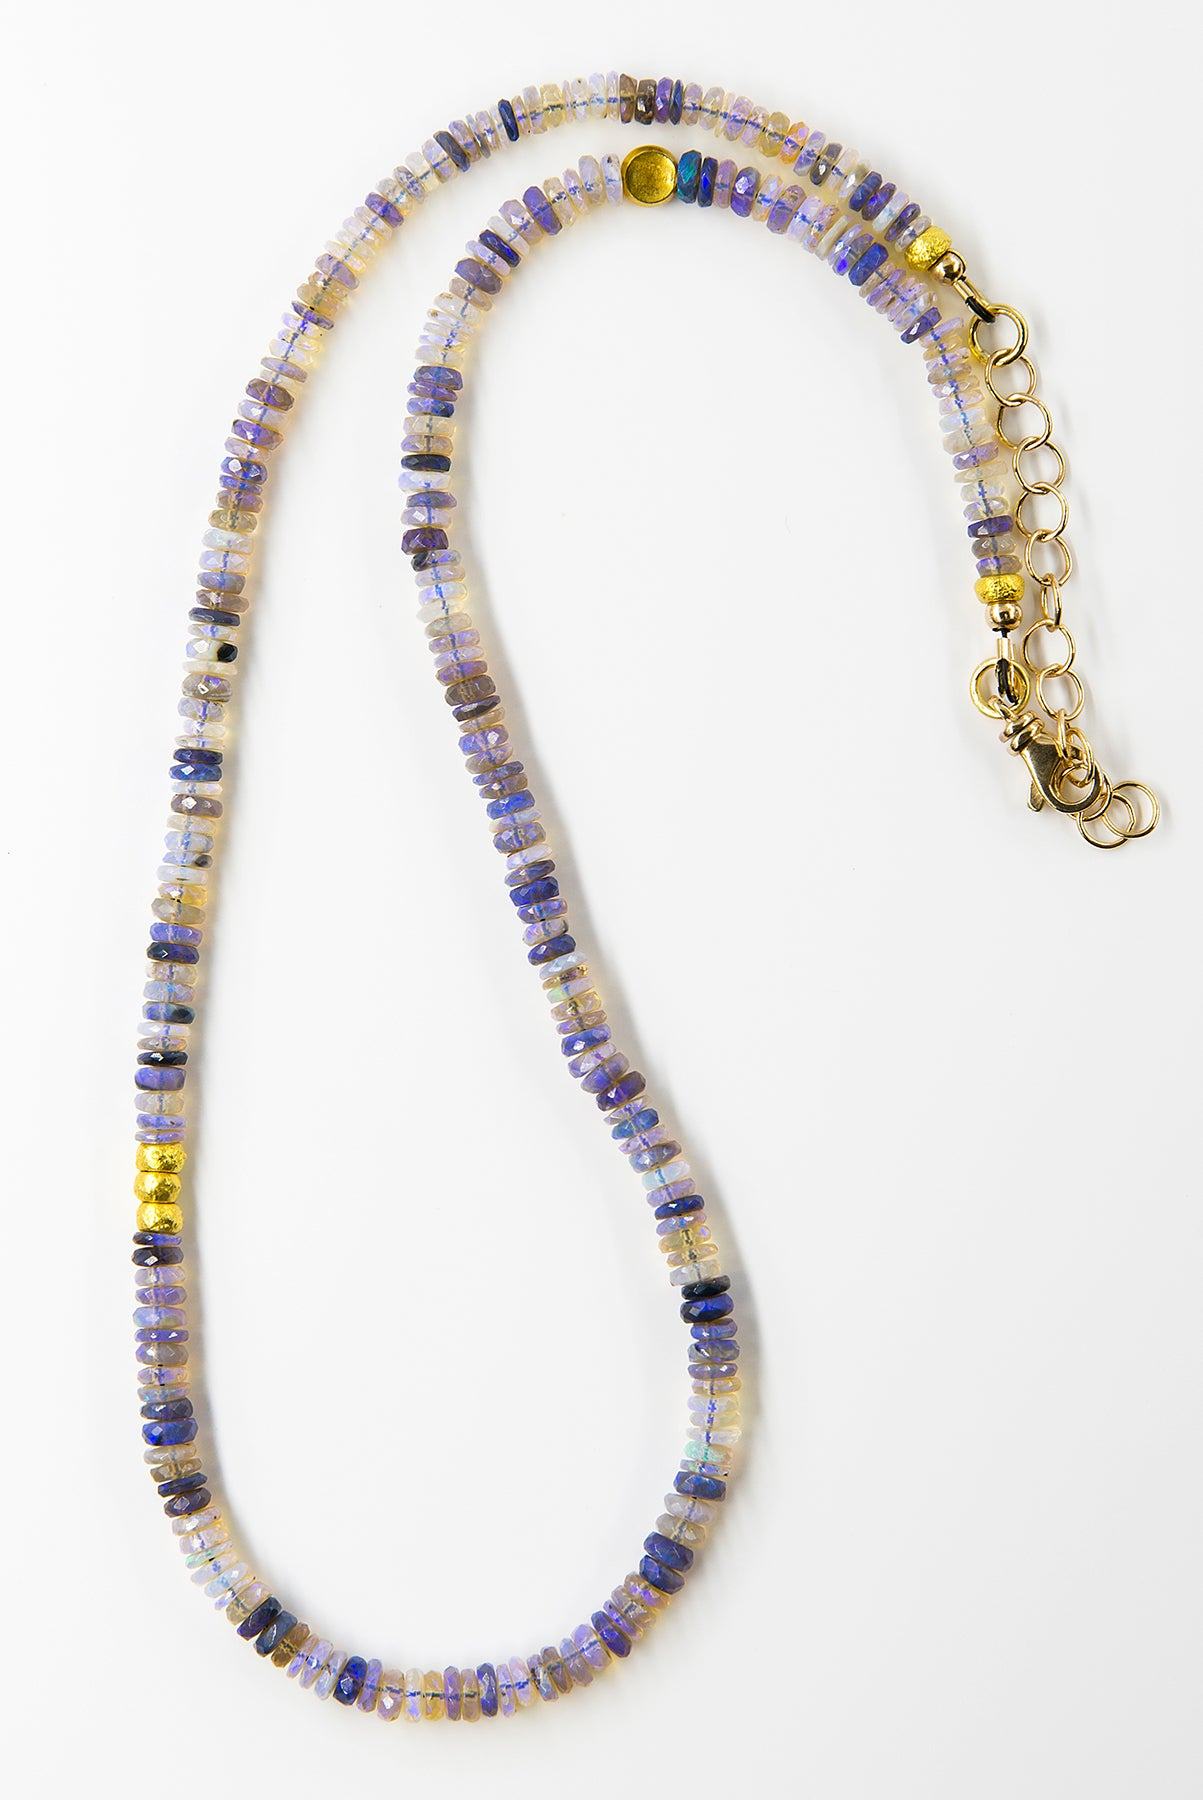 Opal Bead Necklace and Earrings